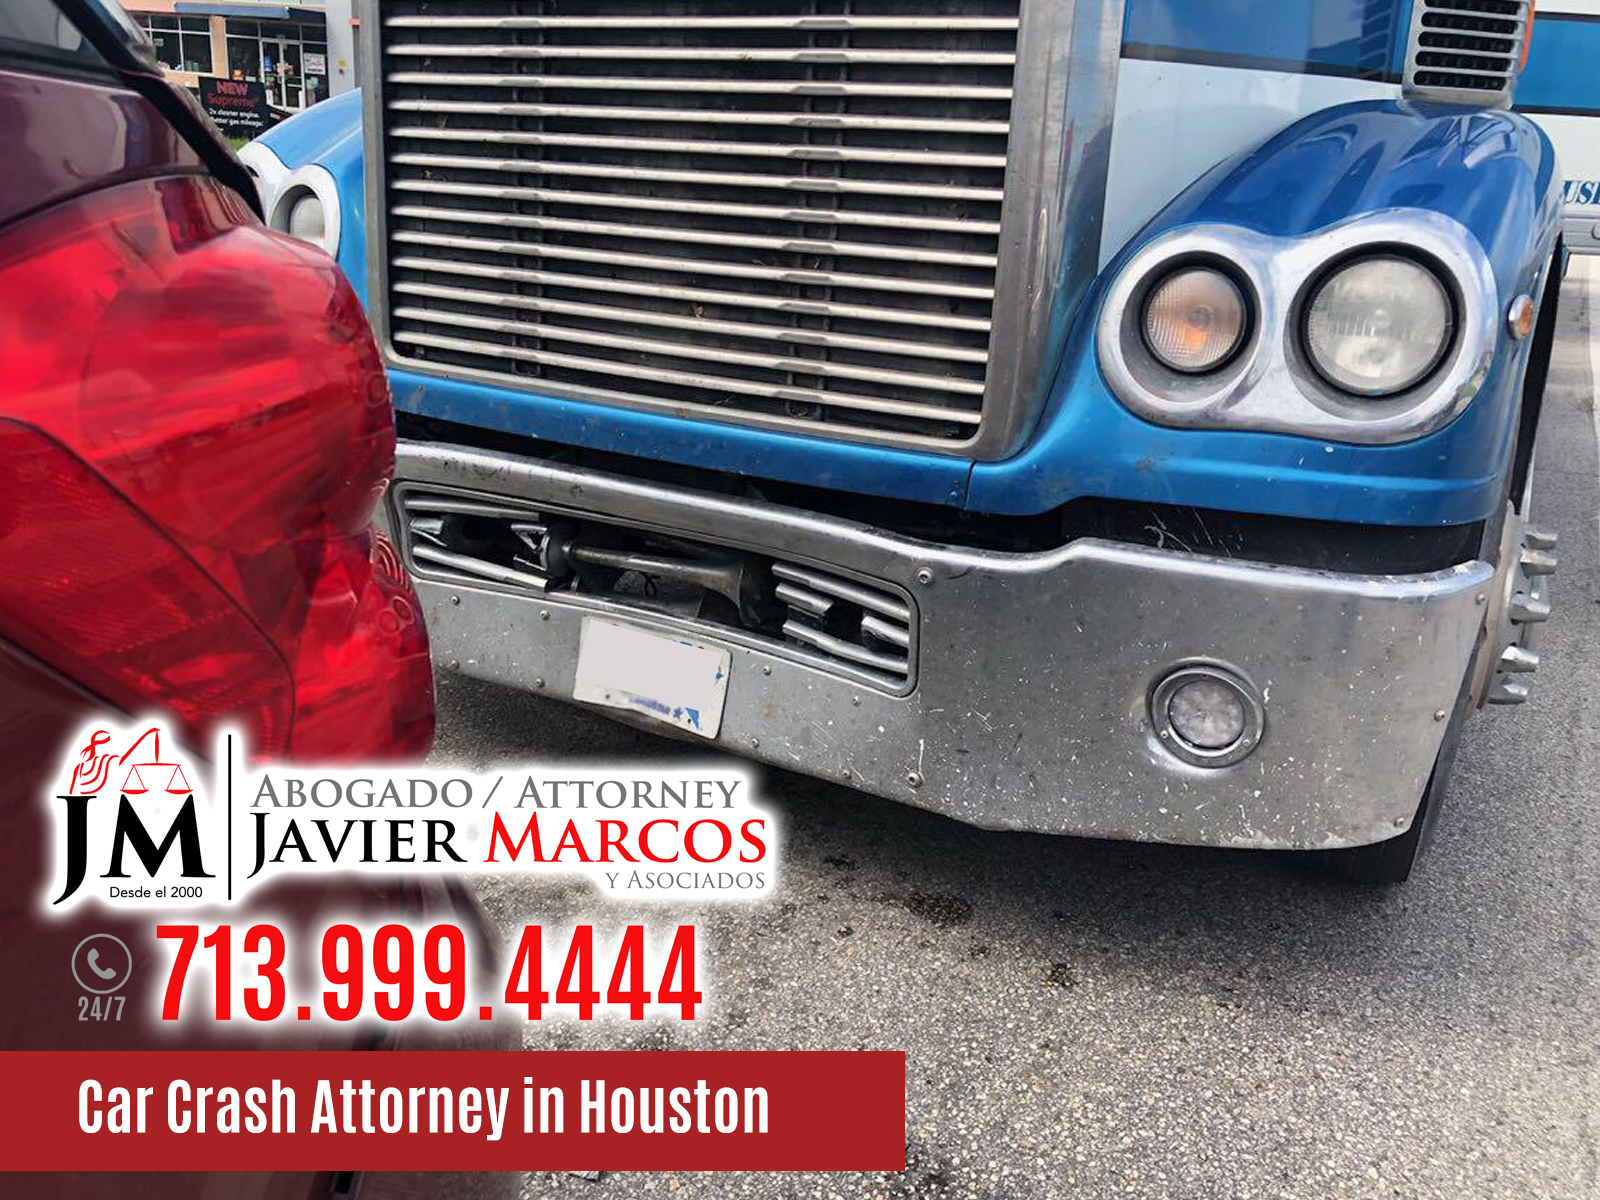 Car Crash Attorney in Houston | Attorney Javier Marcos | 713.999.4444